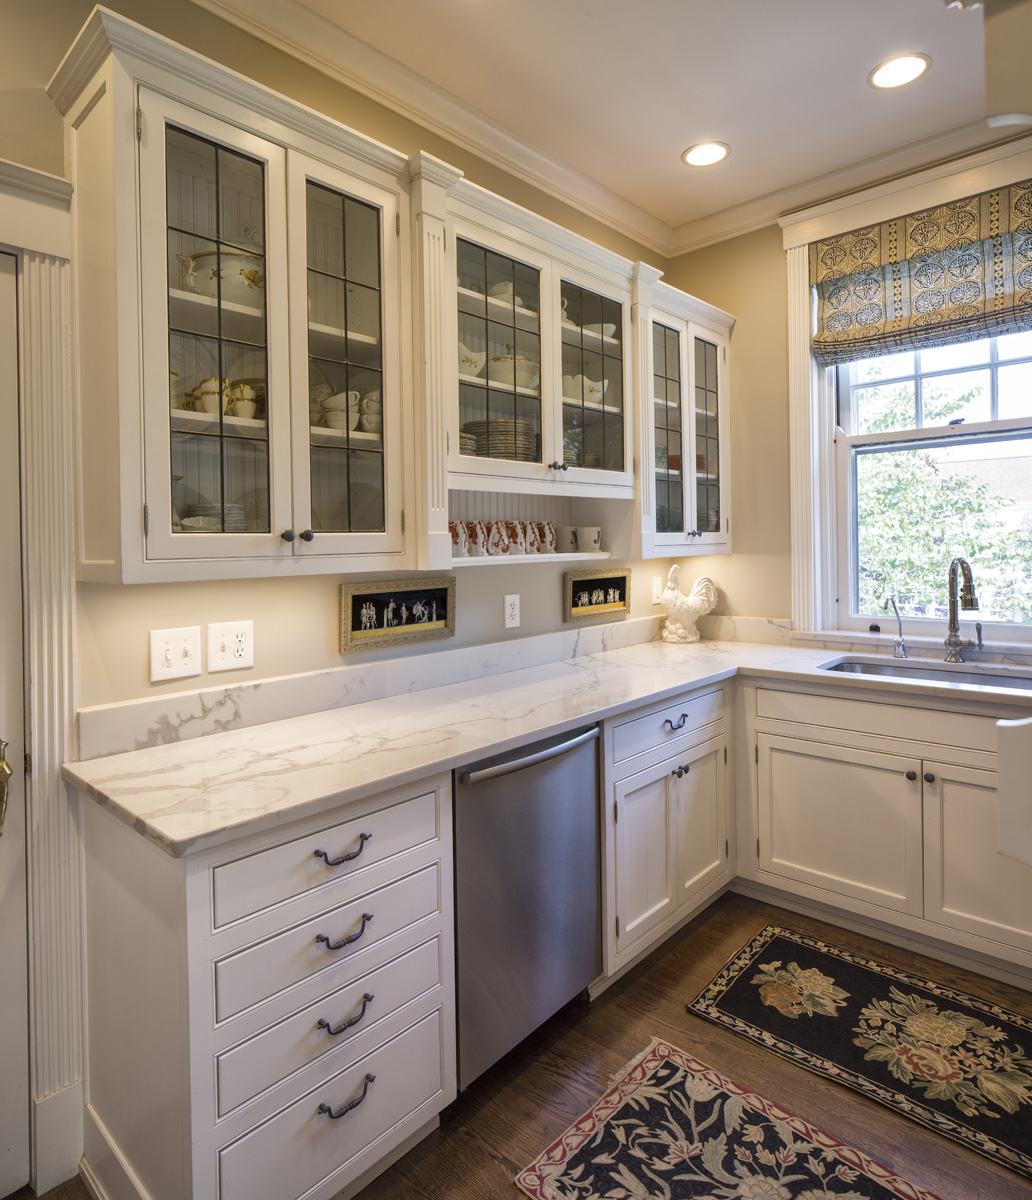 We artfully renovated this butler's pantry. The only element we couldn't provide was a butler.